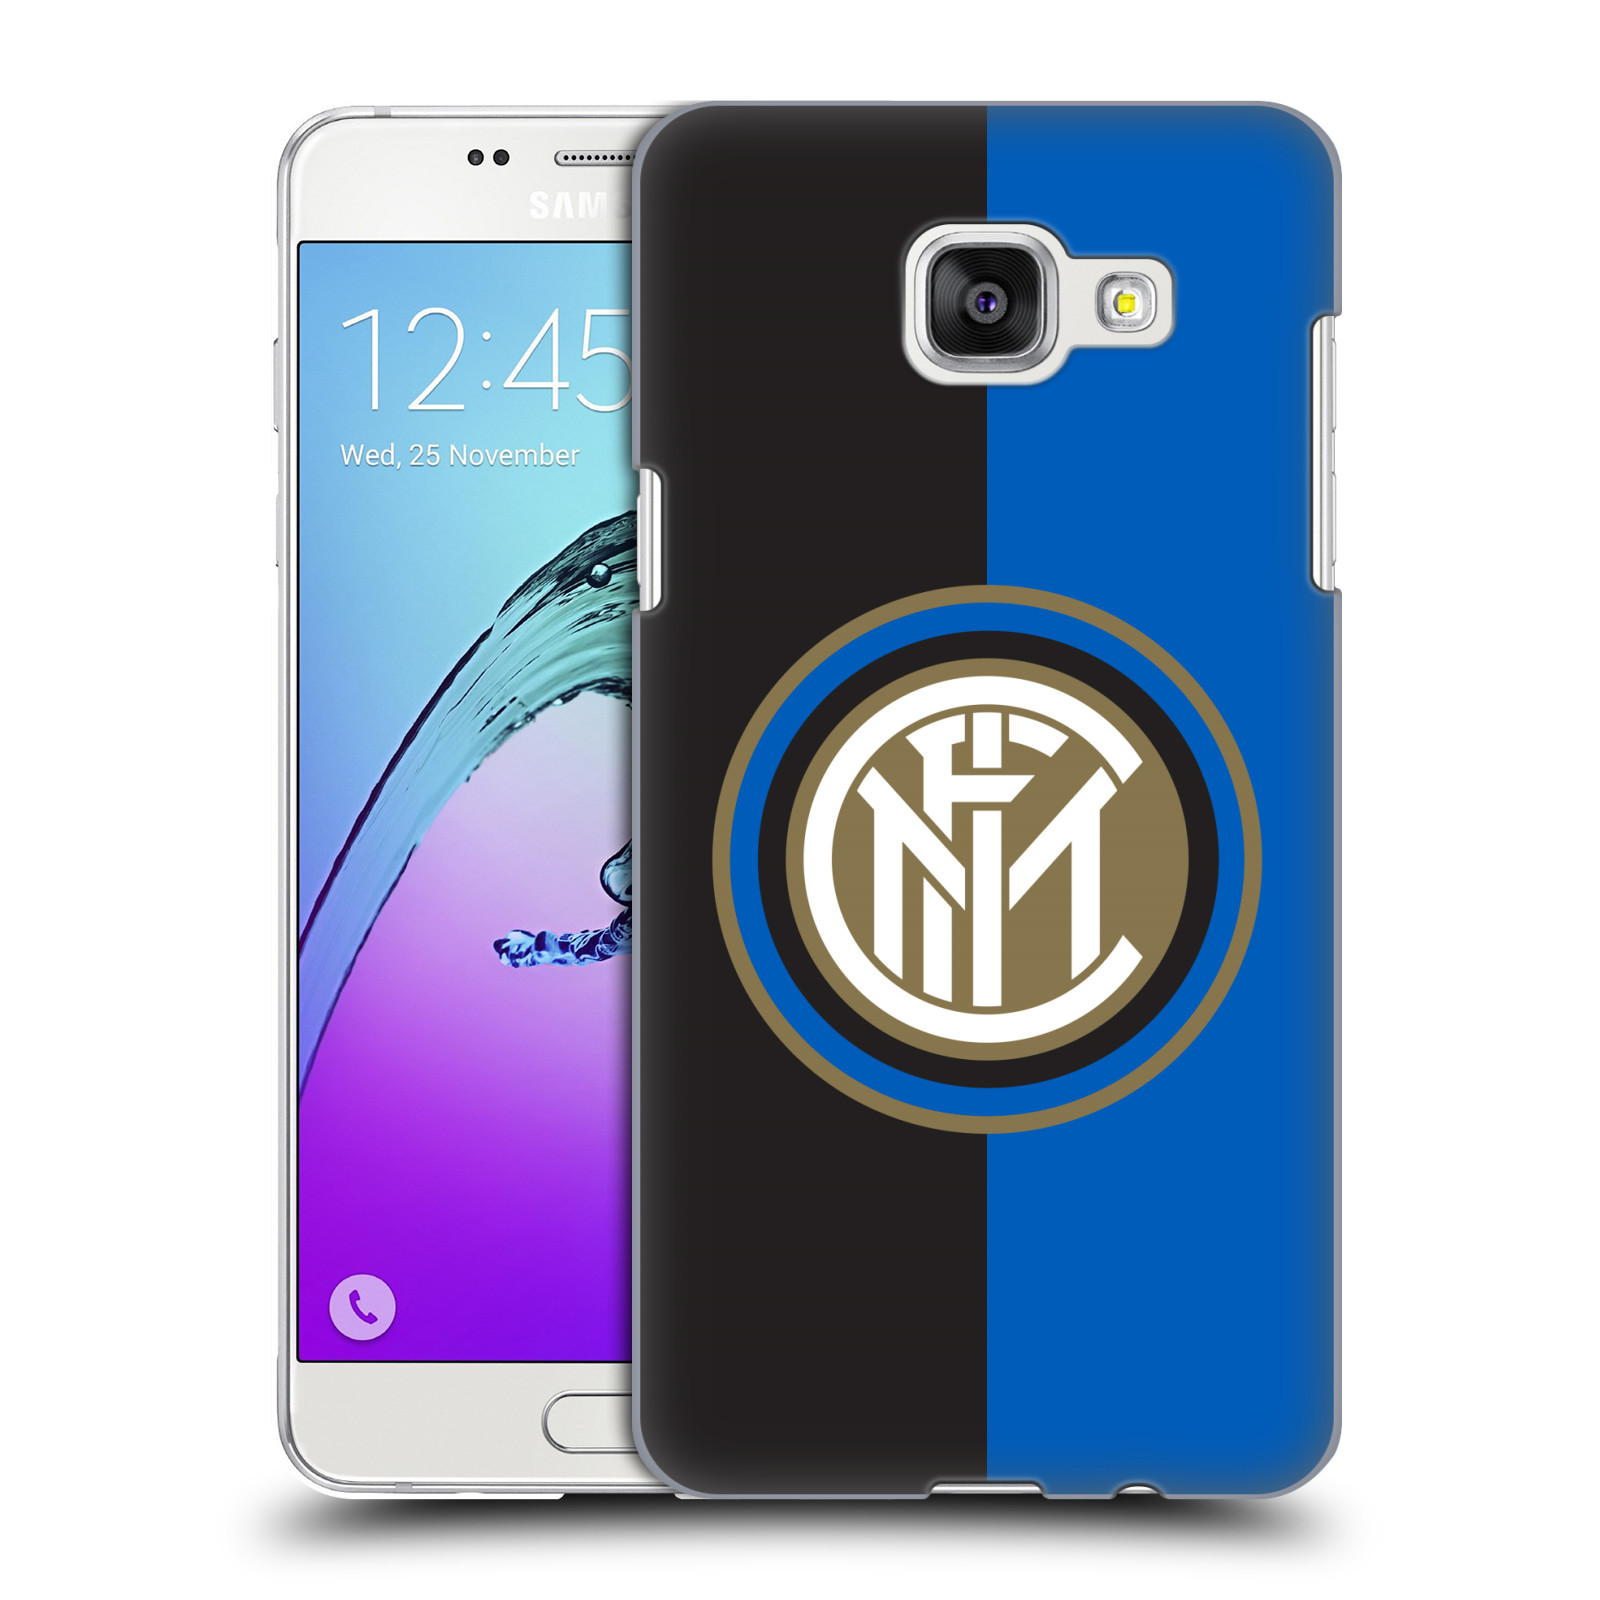 Plastové pouzdro na mobil Samsung Galaxy A5 (2016) - Head Case - Inter Milan - Black and blue